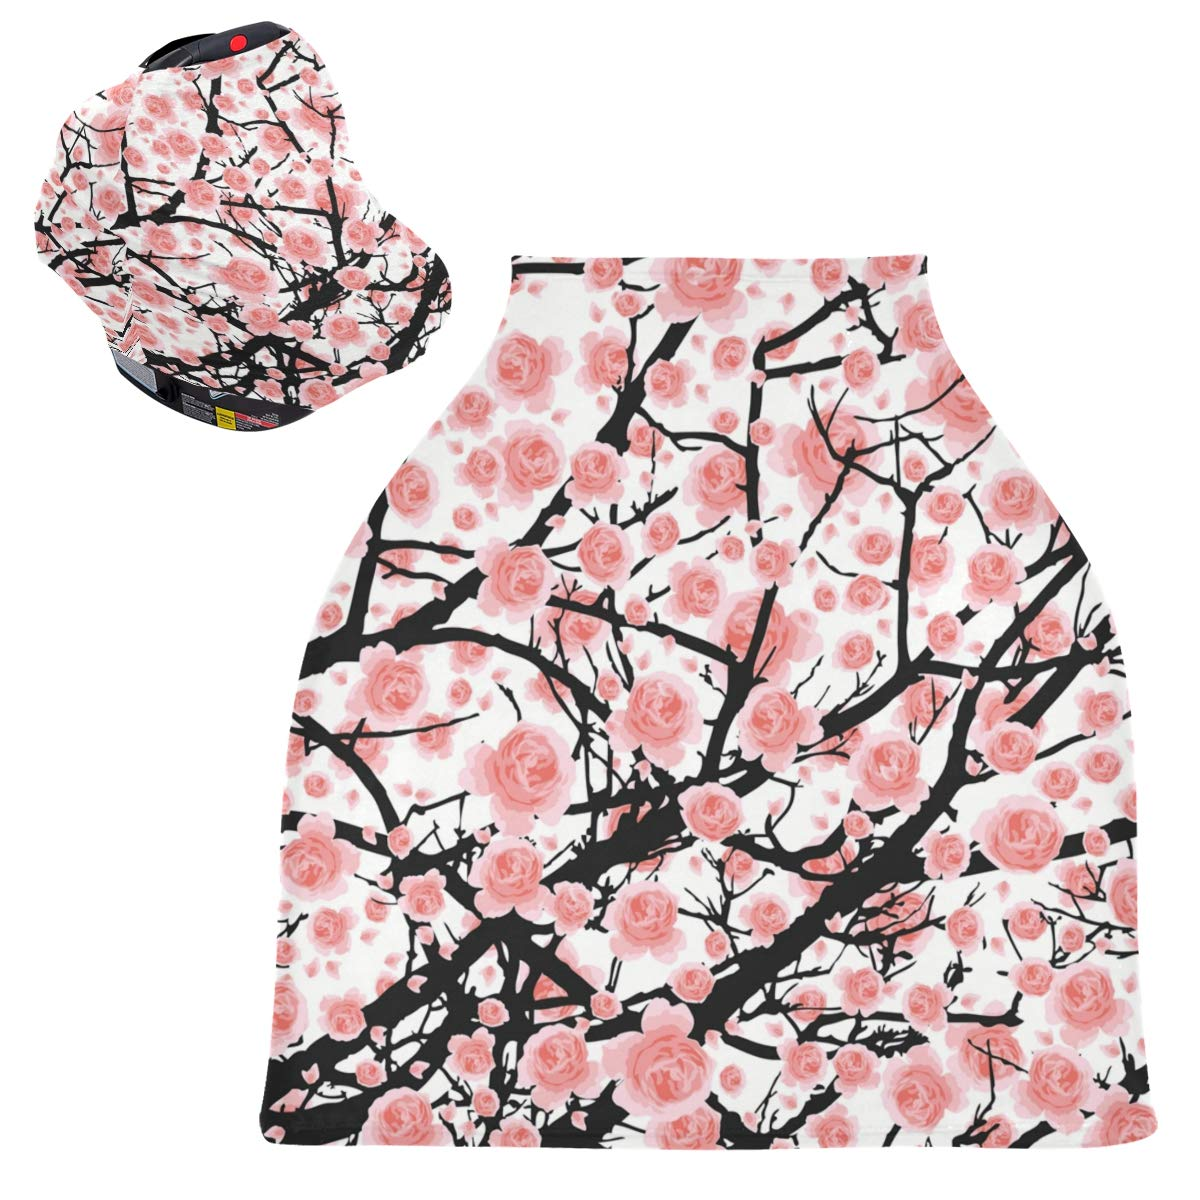 Stretchy Baby Car Seat Canopy - Full Pink Bloom Cherry Tree Infant Stroller Cover Multi Use Carseat Canopy Nursing Cover for Breastfeeding